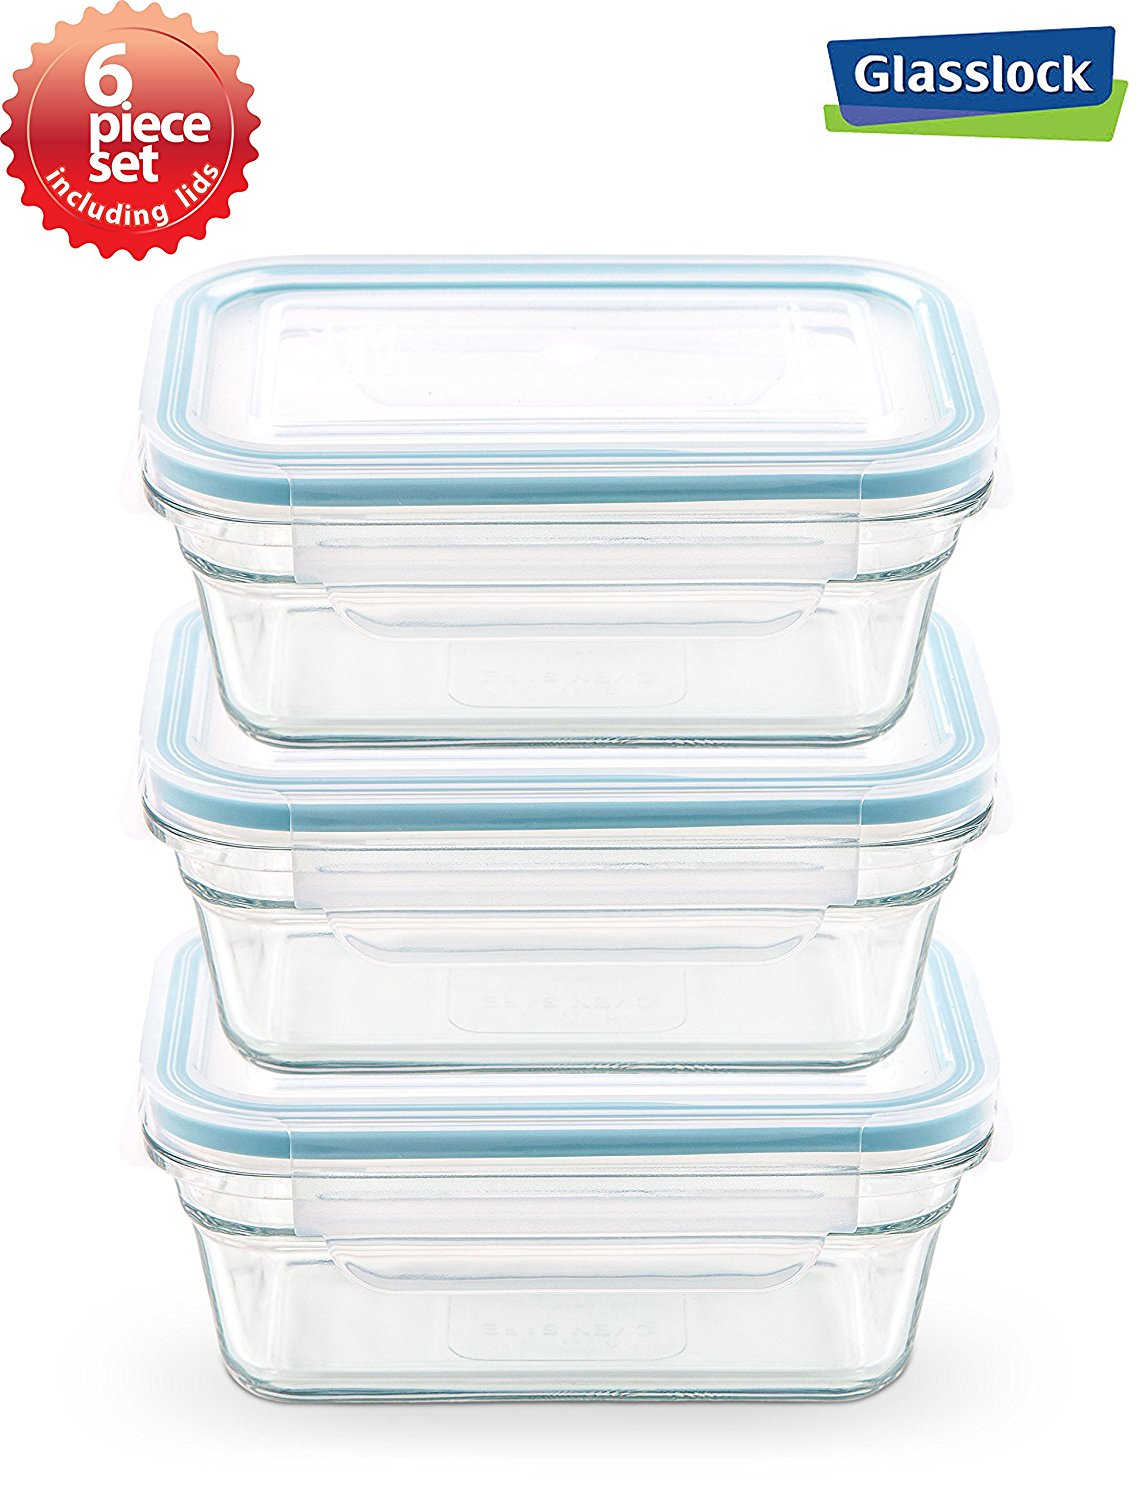 Glasslock Anti Spill Airtight Oven Safe Rectangular Food Storage Container  6 Piece Set (6.3cups